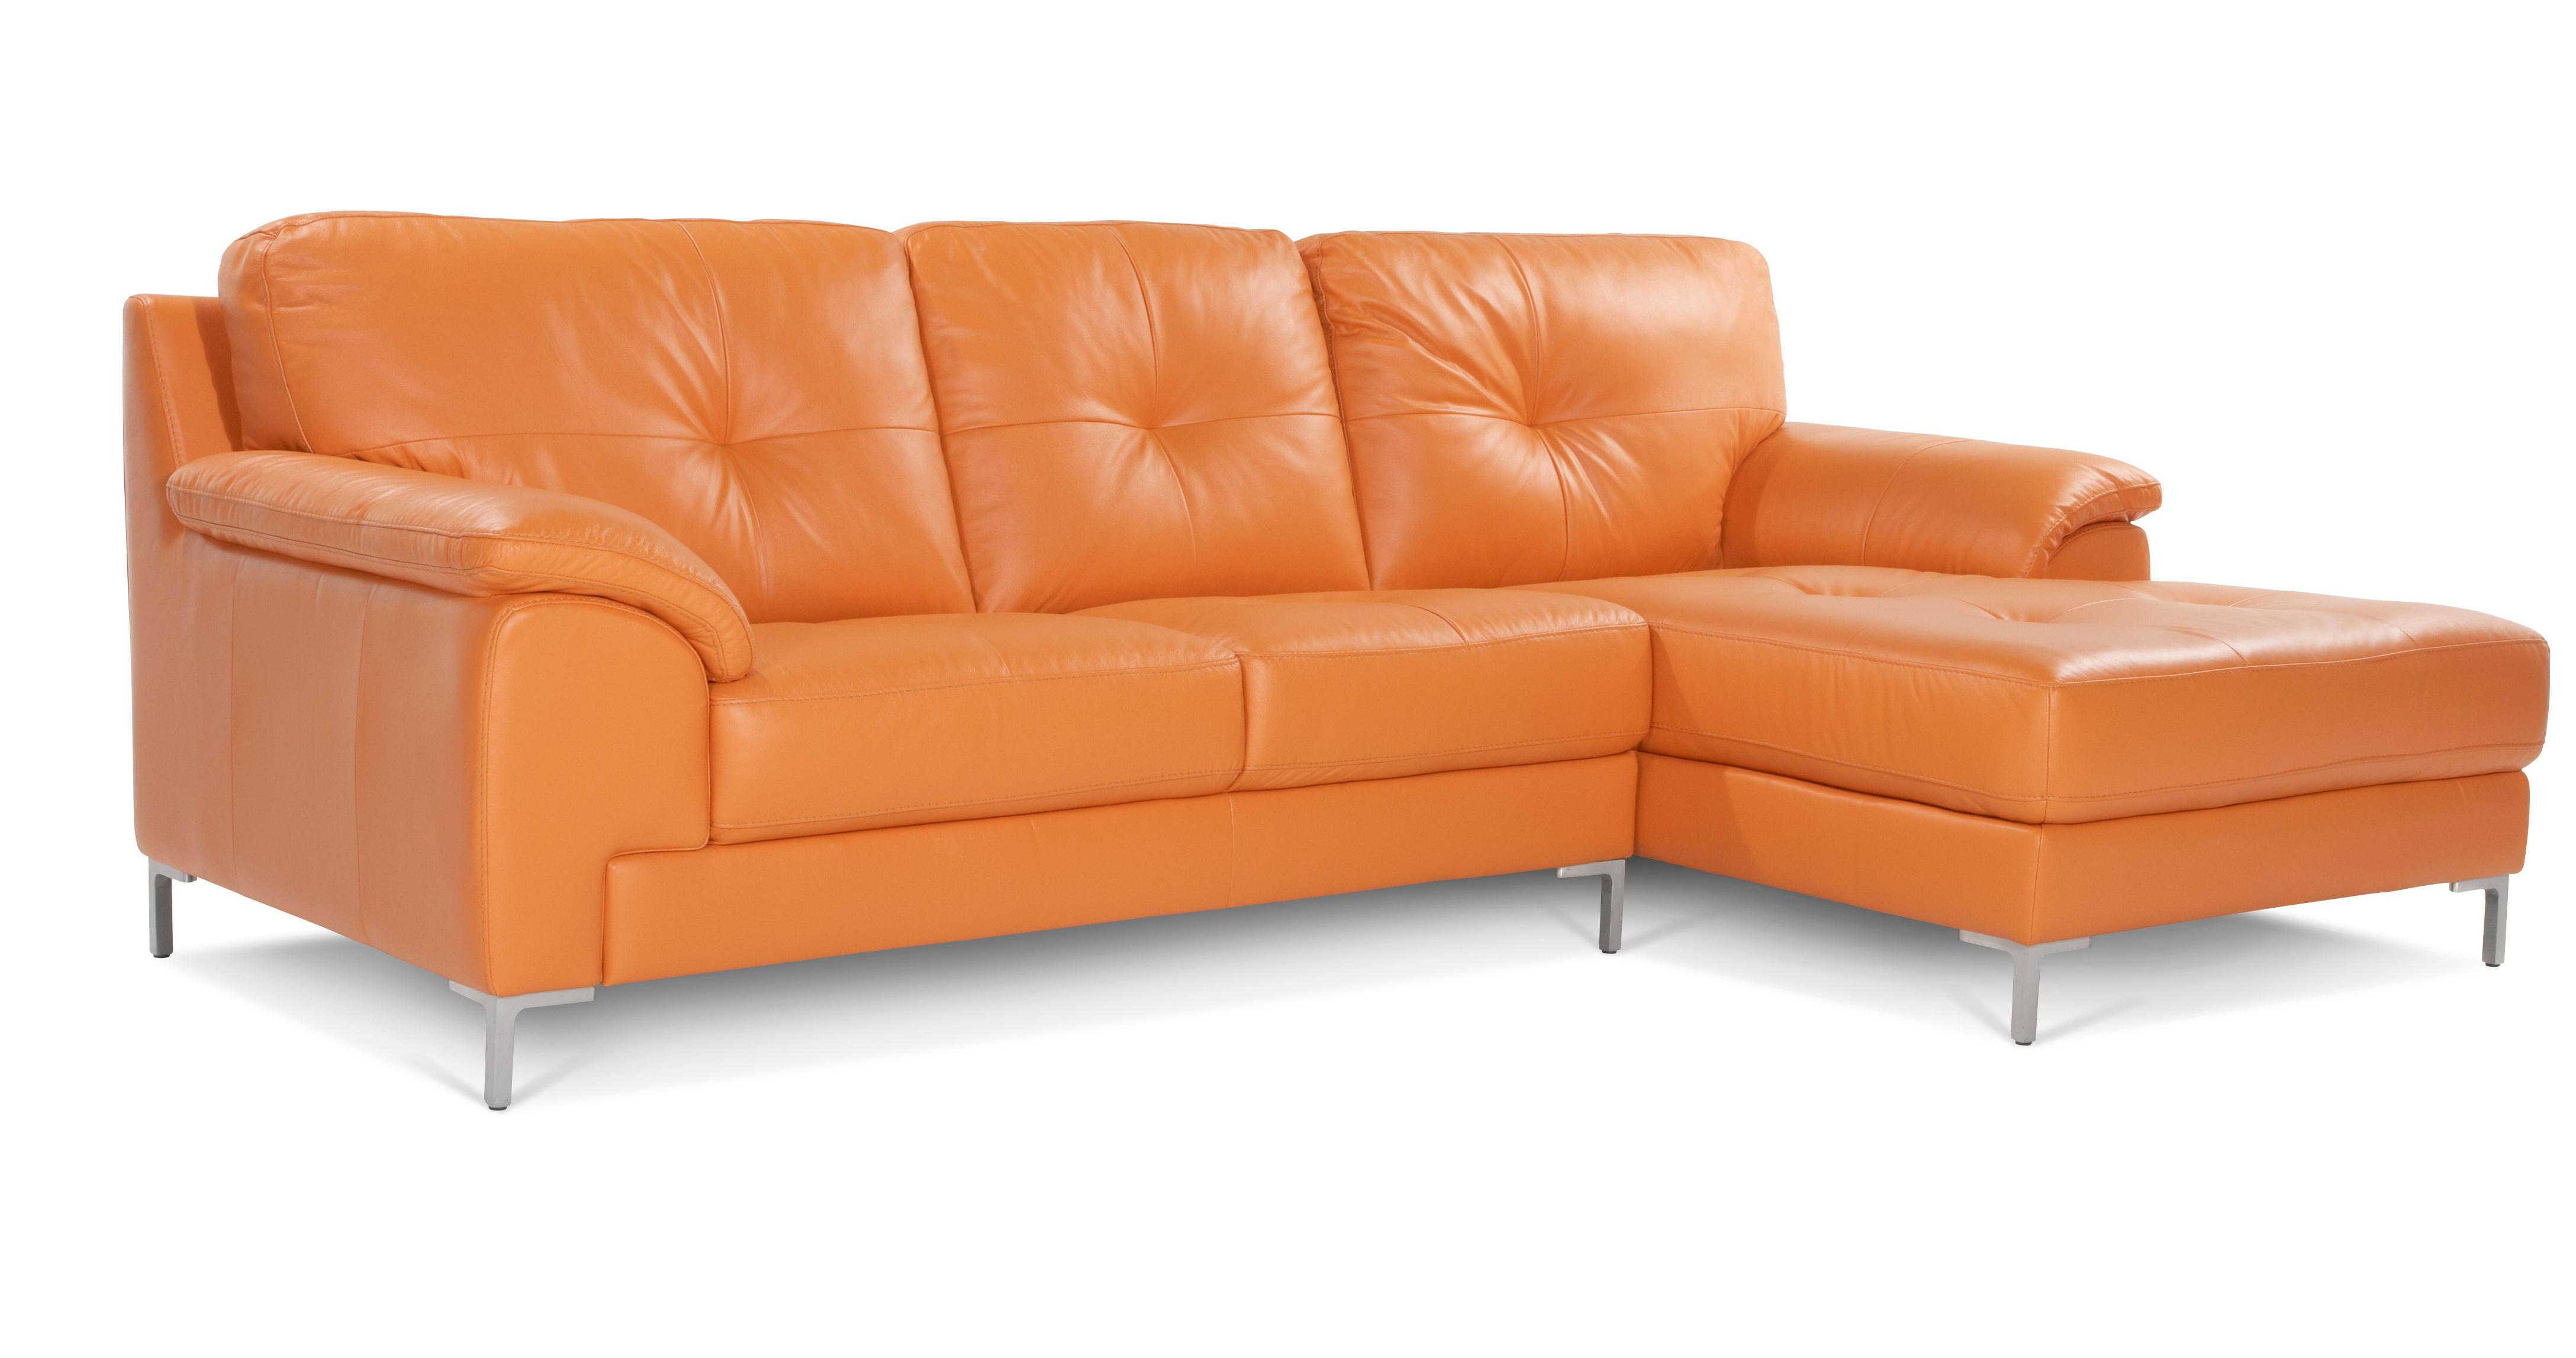 orange sofas ebay granite top sofa table dfs ainsley right hand facing 100 leather chaise